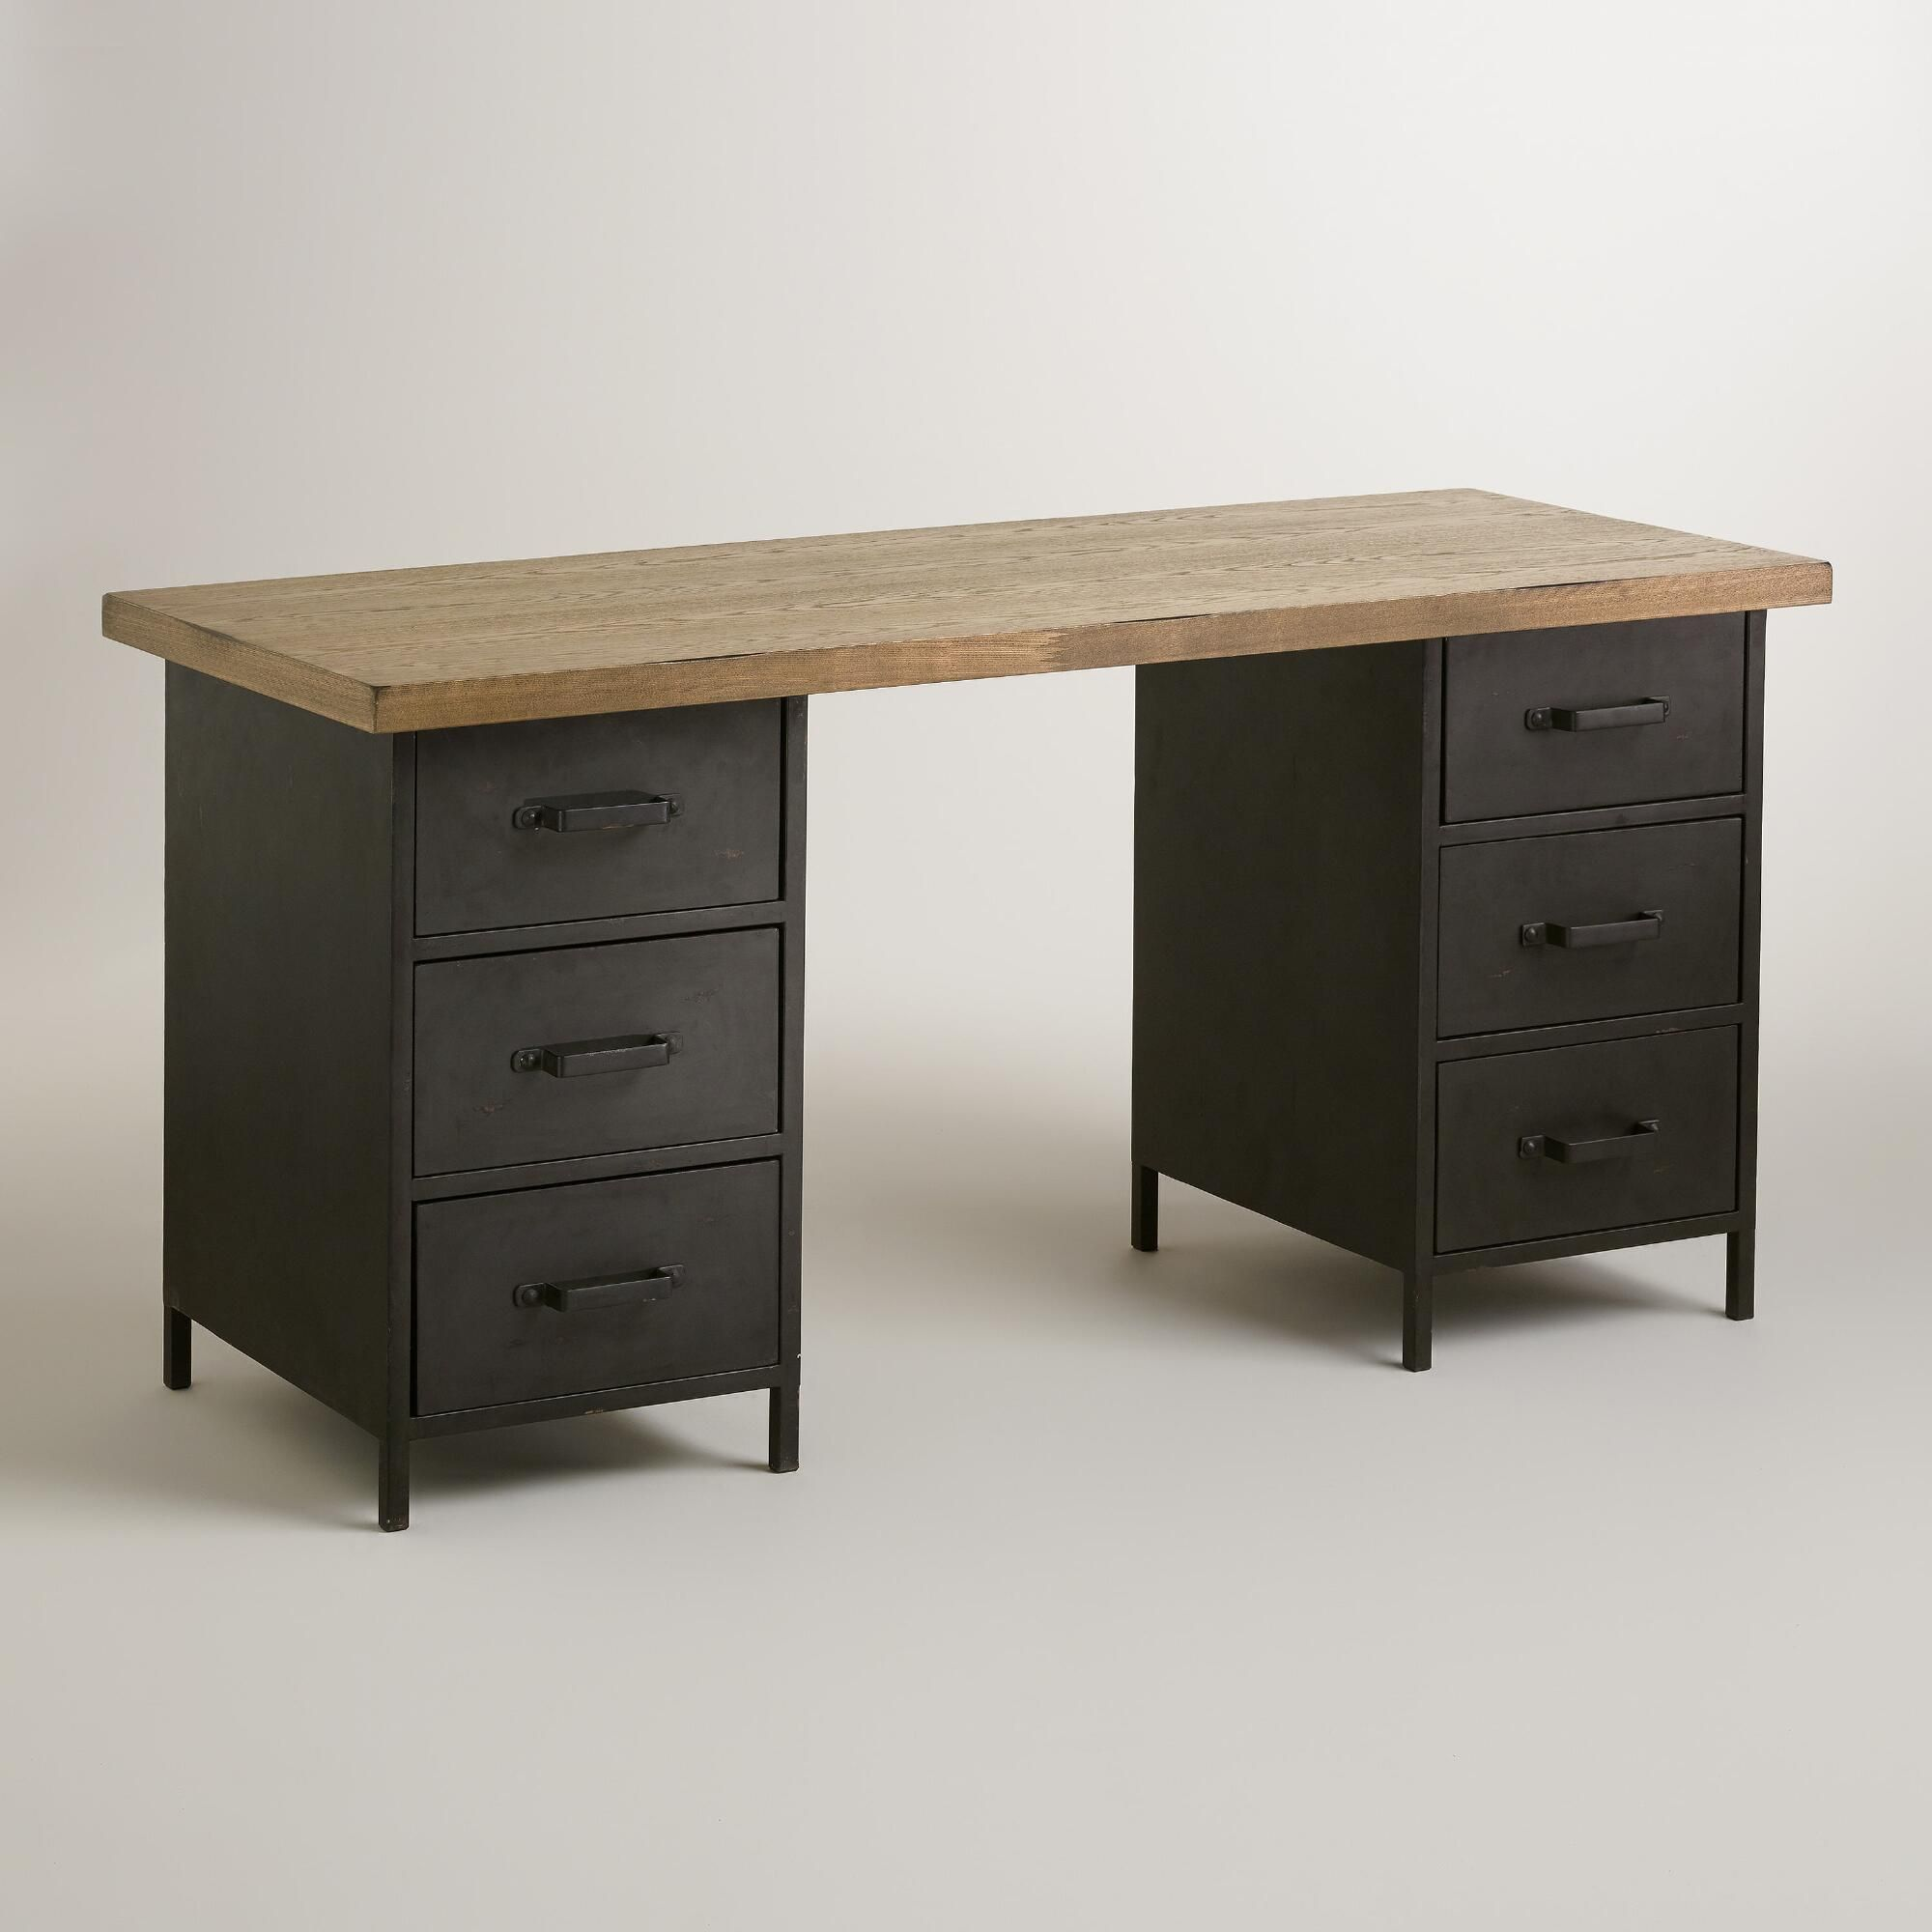 Natural Wood And Metal Drawer Colton Mix Match Desk Desk With Drawers Natural Wood Desk Desk Furniture